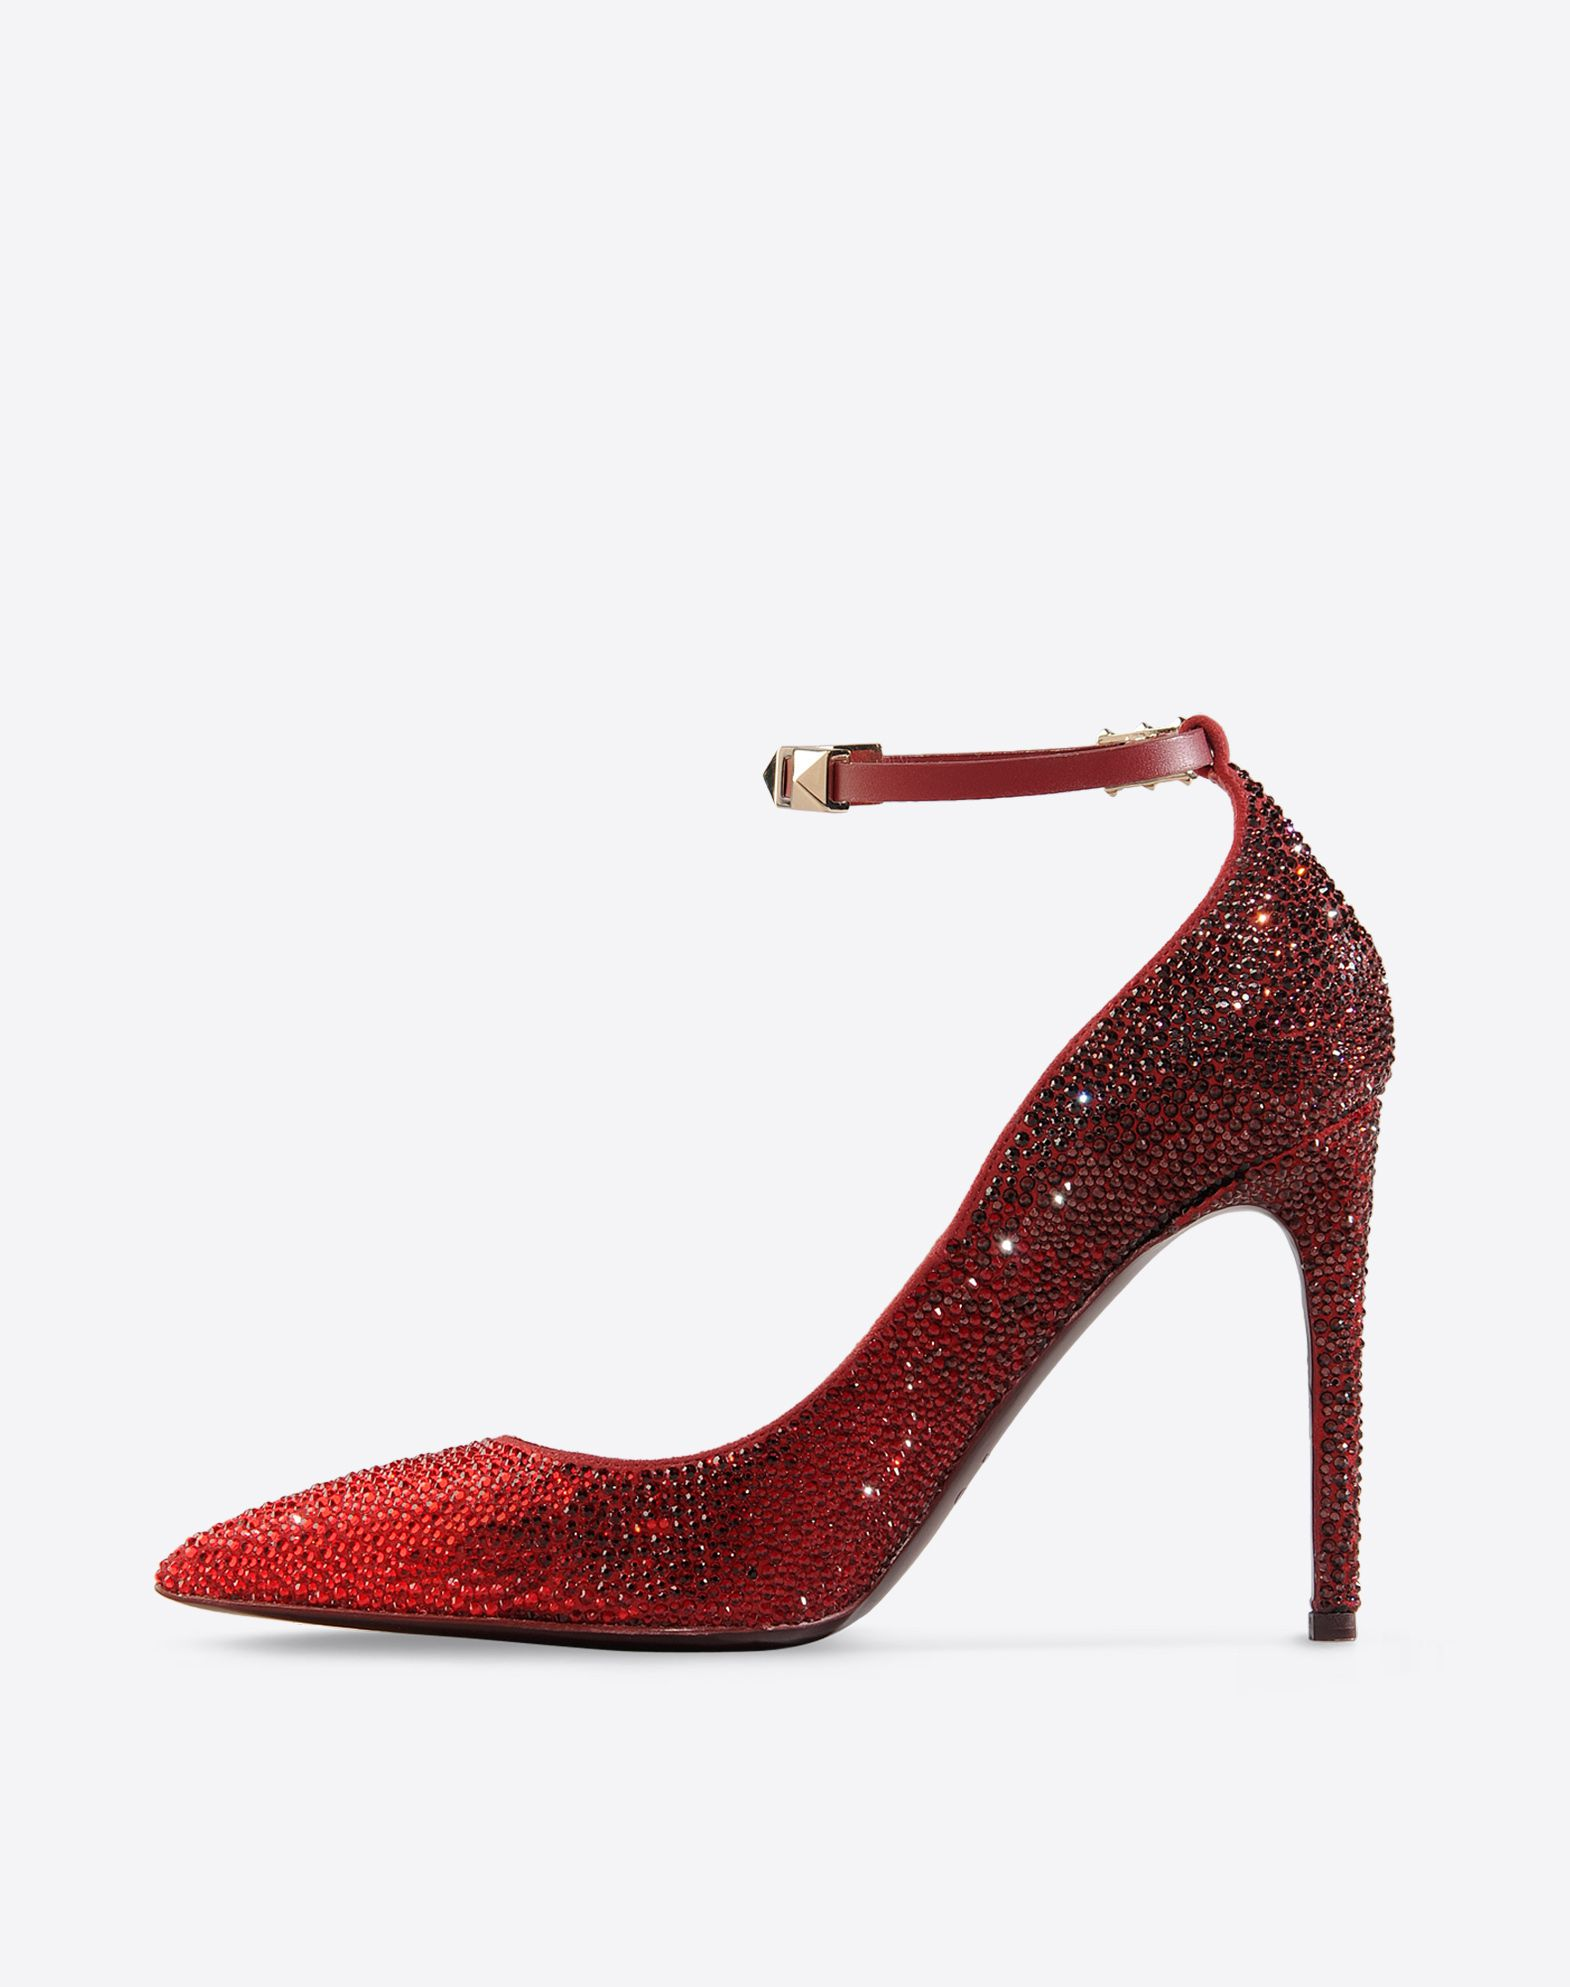 VALENTINO Rhinestone detailing Studs Solid color Buckling ankle strap closure Leather sole Narrow toeline Covered heel  44656026hx